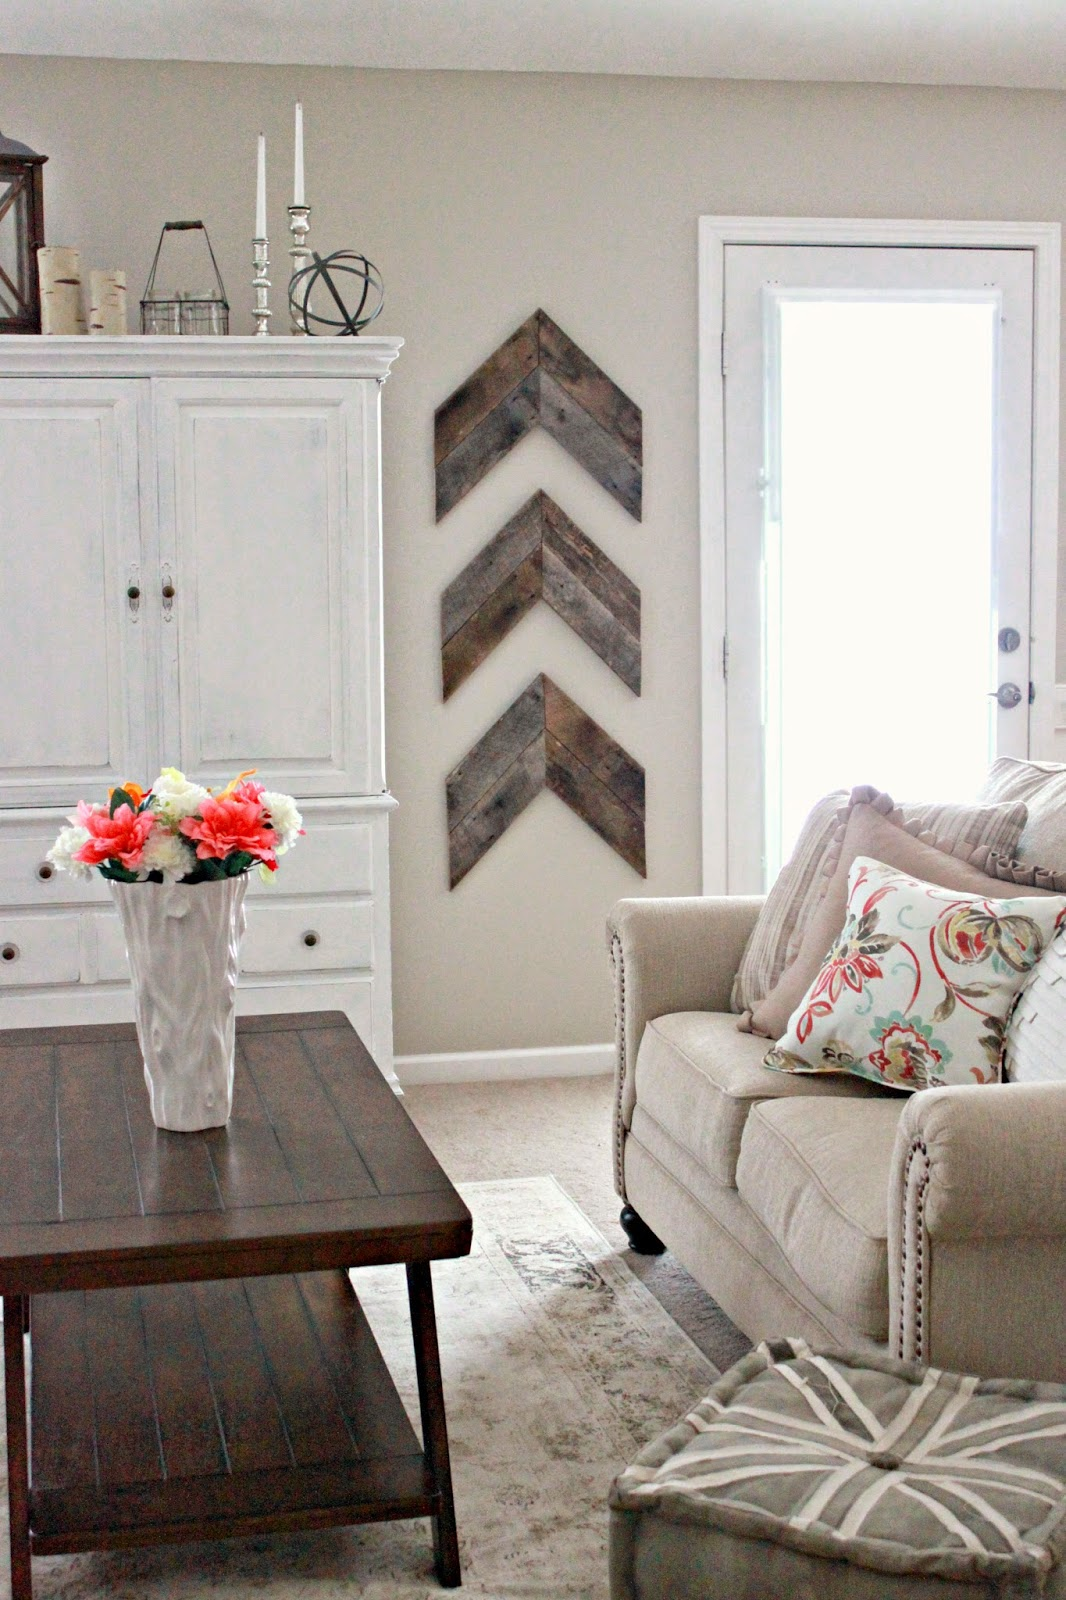 rustic wall decor ideas for living room chic and simple reclaimed wood wall chevrons ZXYATZP